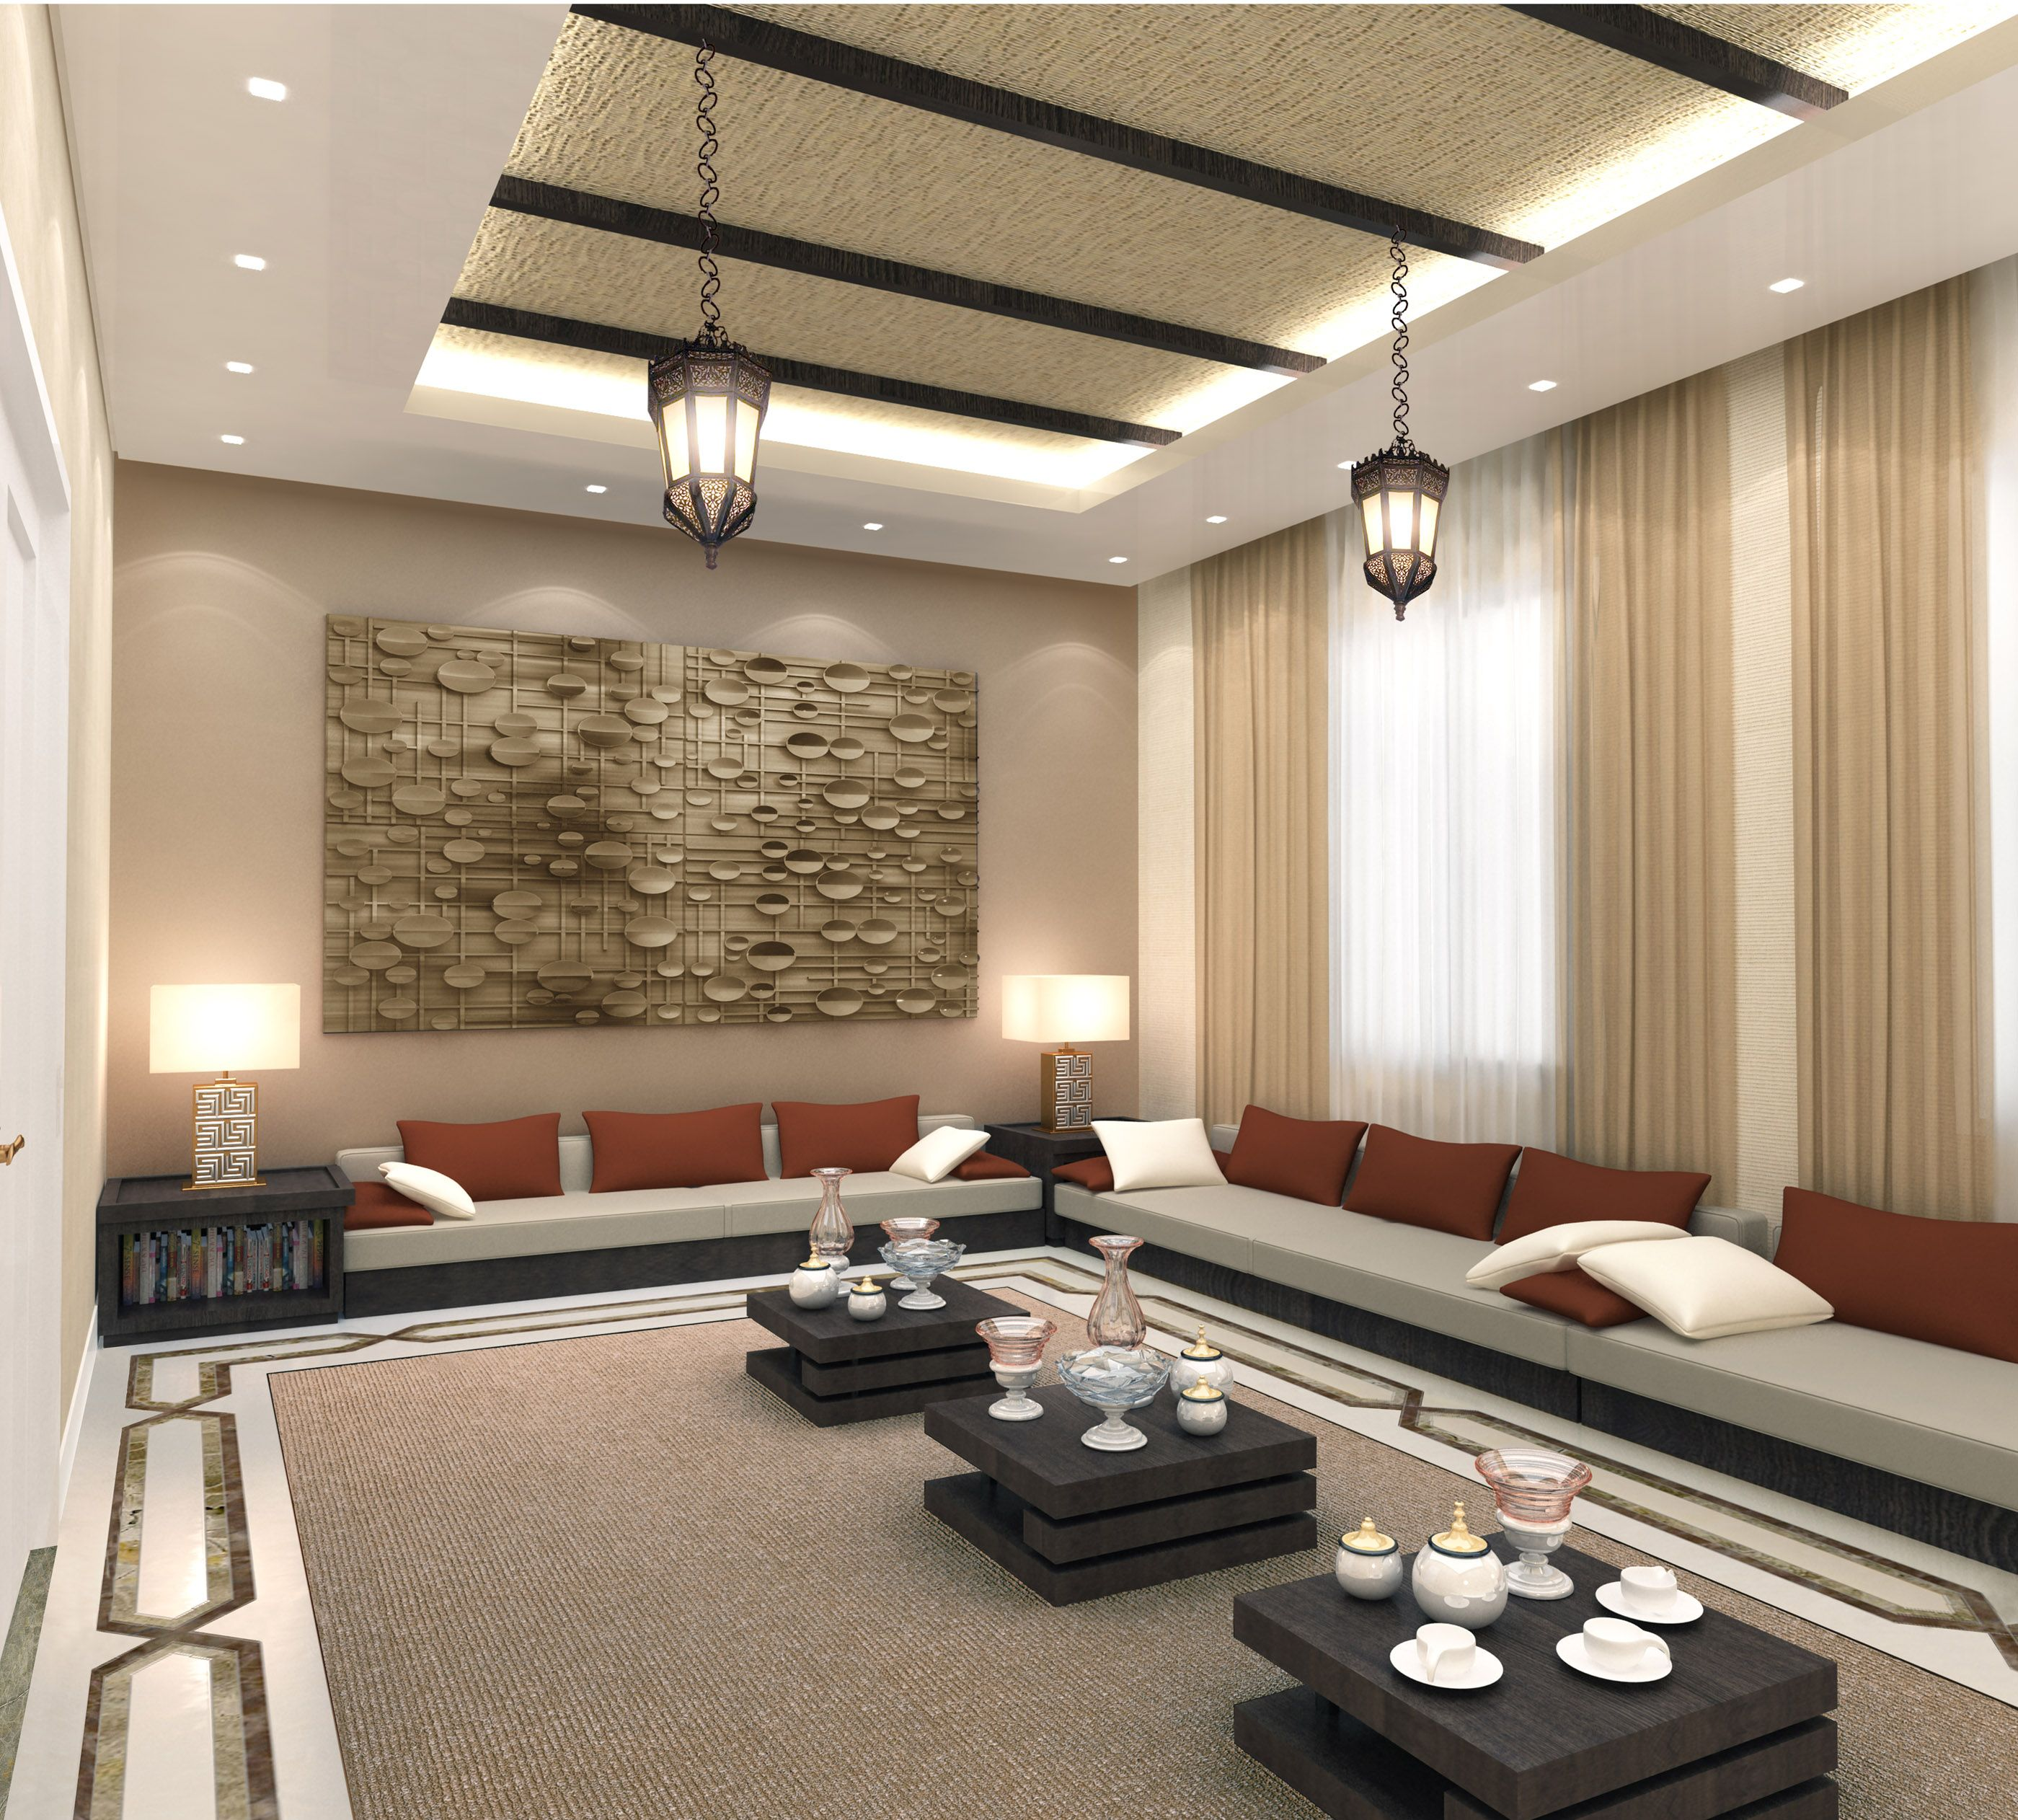 Arabian style majlis boudoir interiors majlis designs for Arabic living room decoration